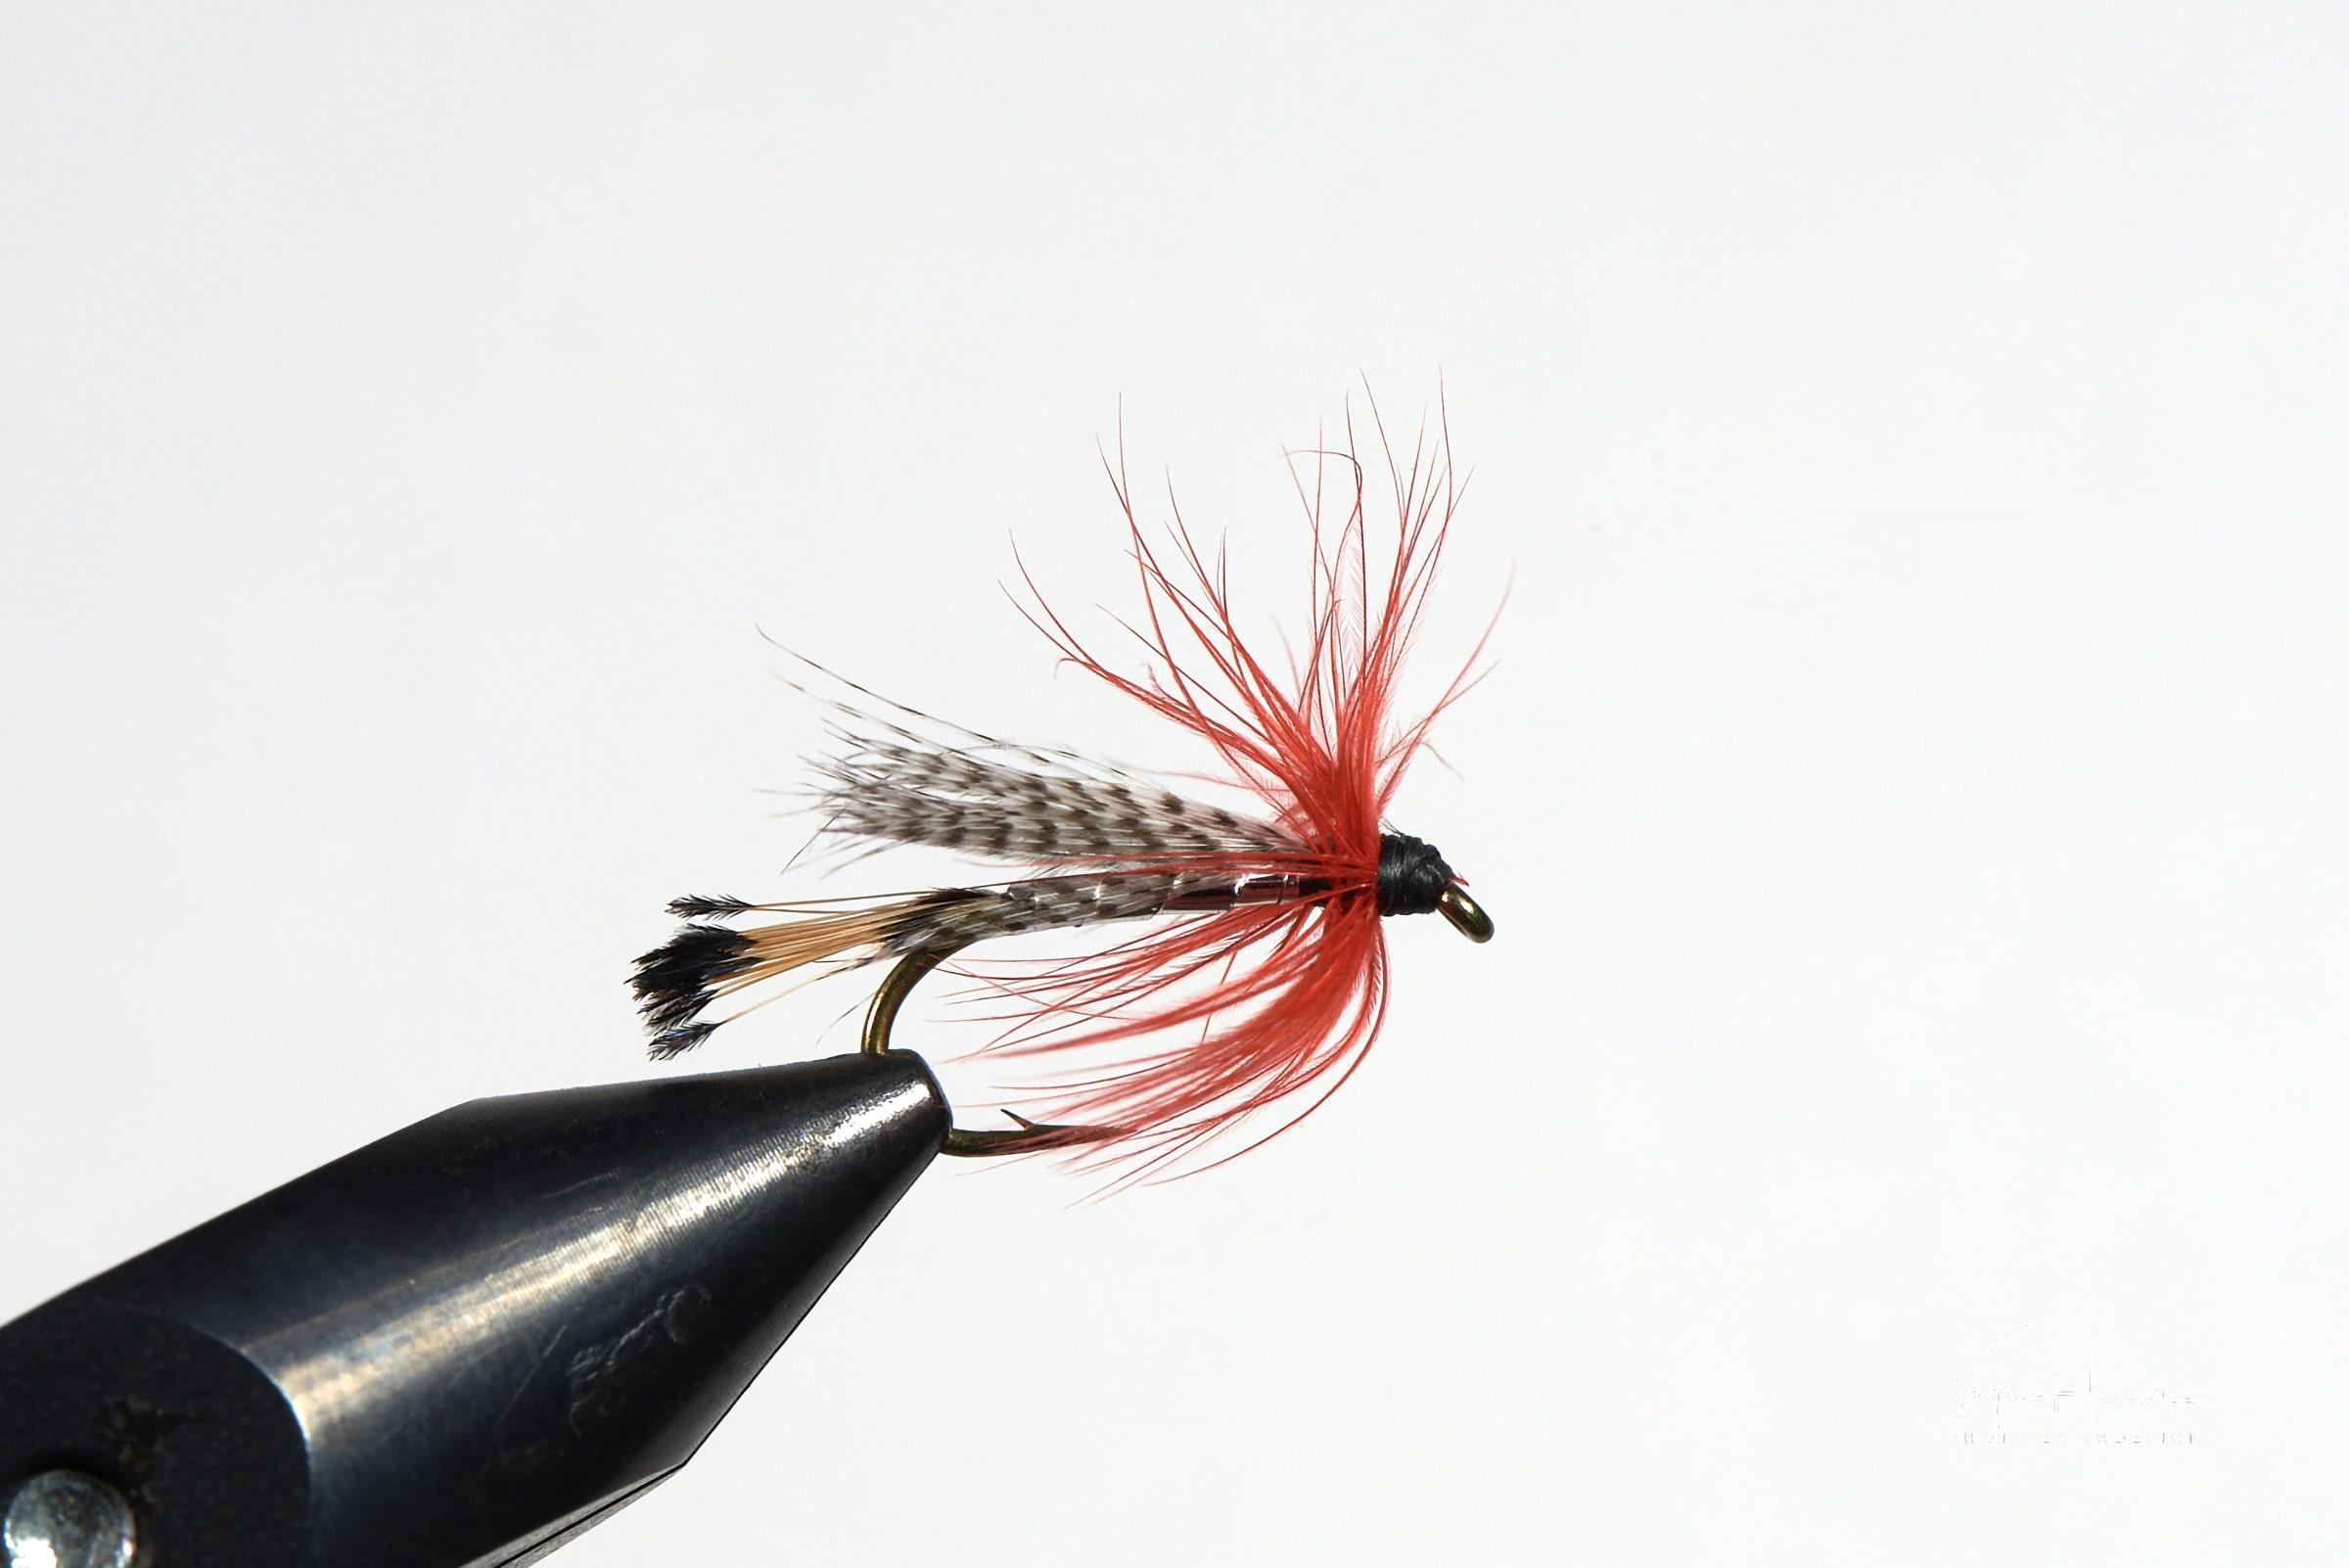 Teal Red and Silver fishy fly. Photo by Vagn Hansen - Visit Greenland